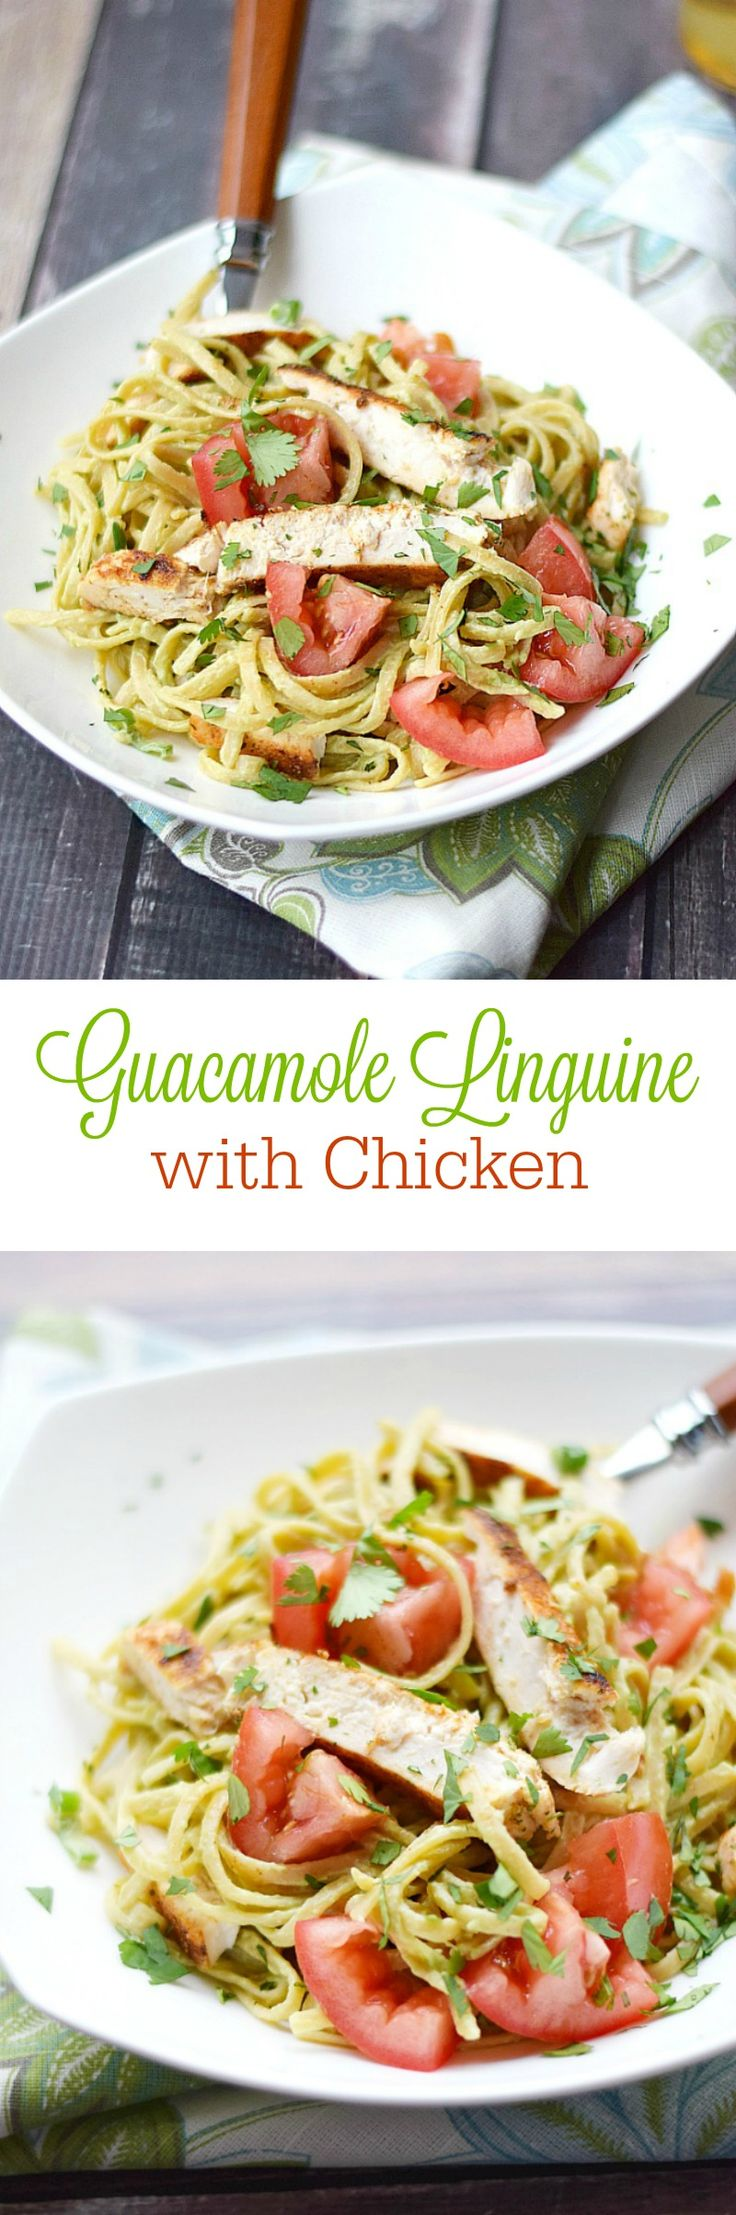 Delight your taste buds with this delicious Guacamole Linguine with Chicken, featuring whole-wheat linguine, seasoned chicken, and a creamy guacamole sauce   cookingwithcurls.com